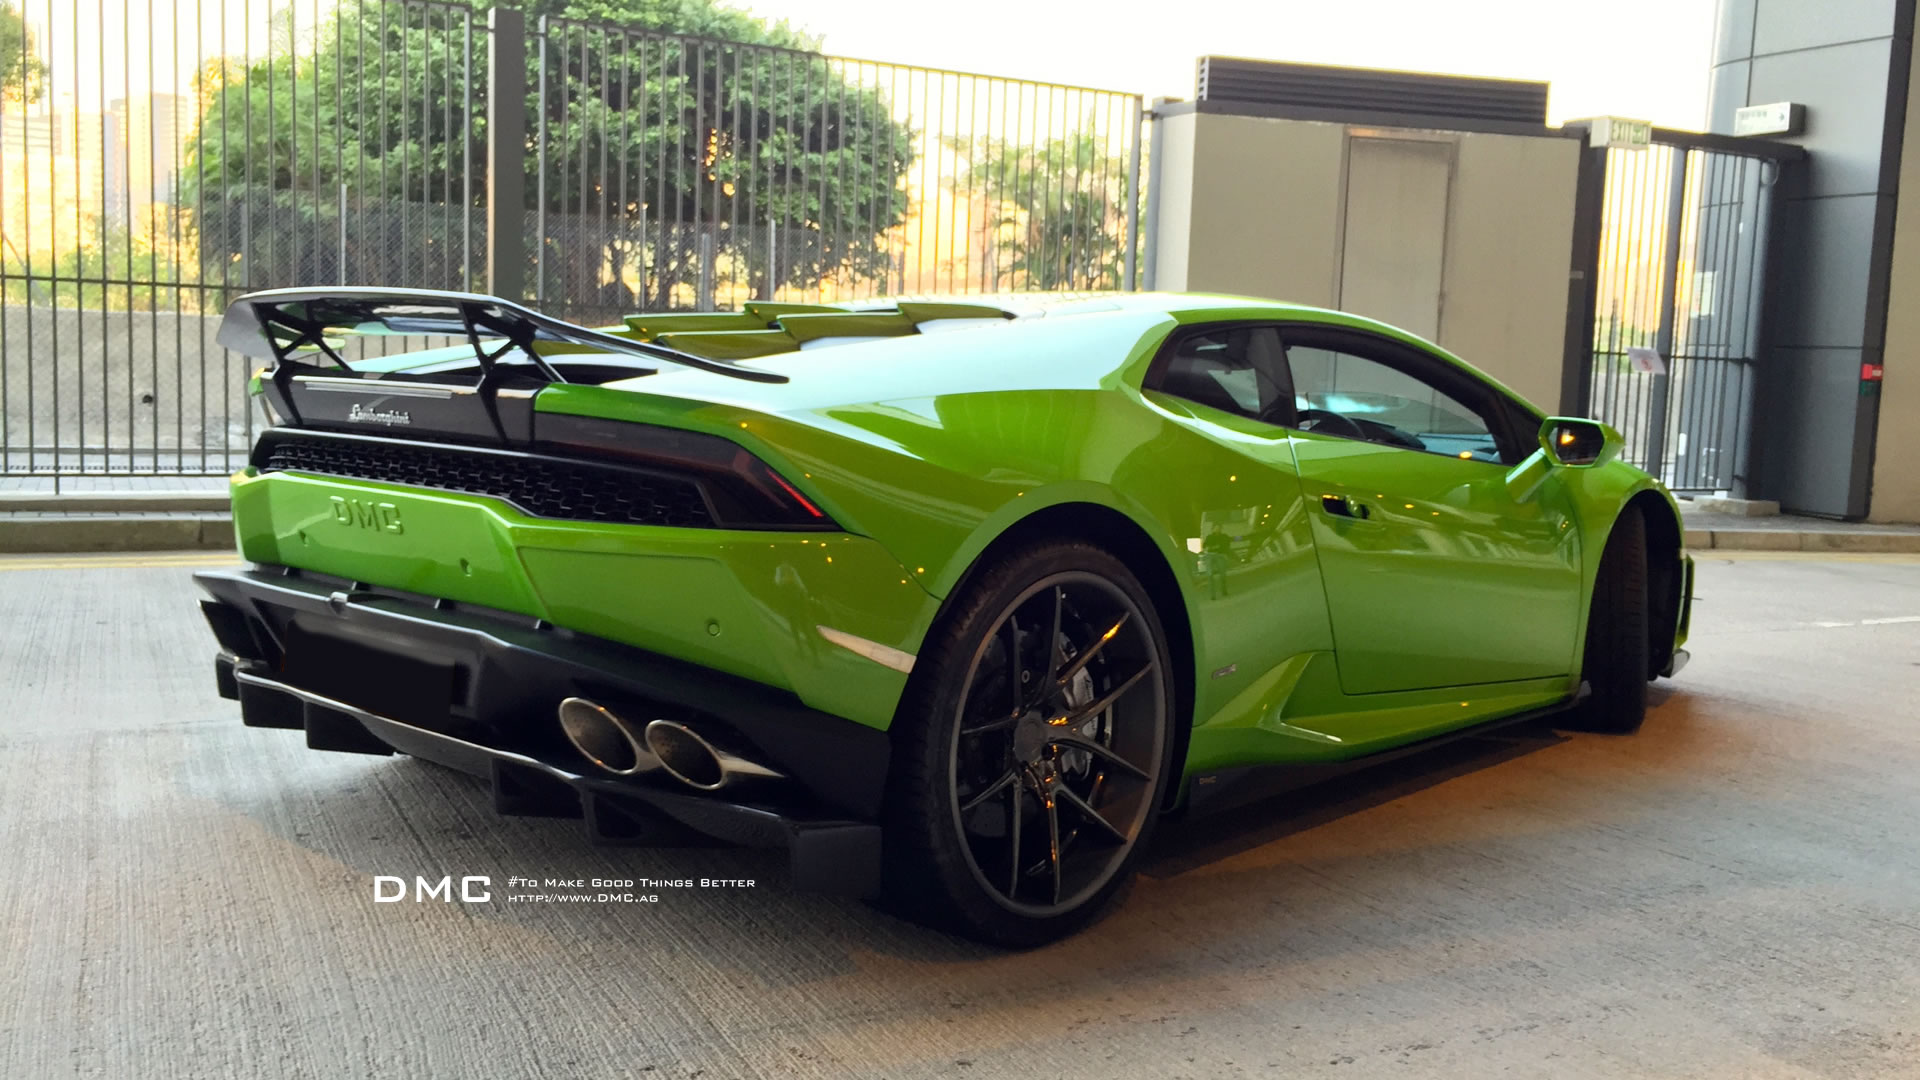 2015 lamborghini huracan lp 630 4 by dmc photos specs and review rs. Black Bedroom Furniture Sets. Home Design Ideas